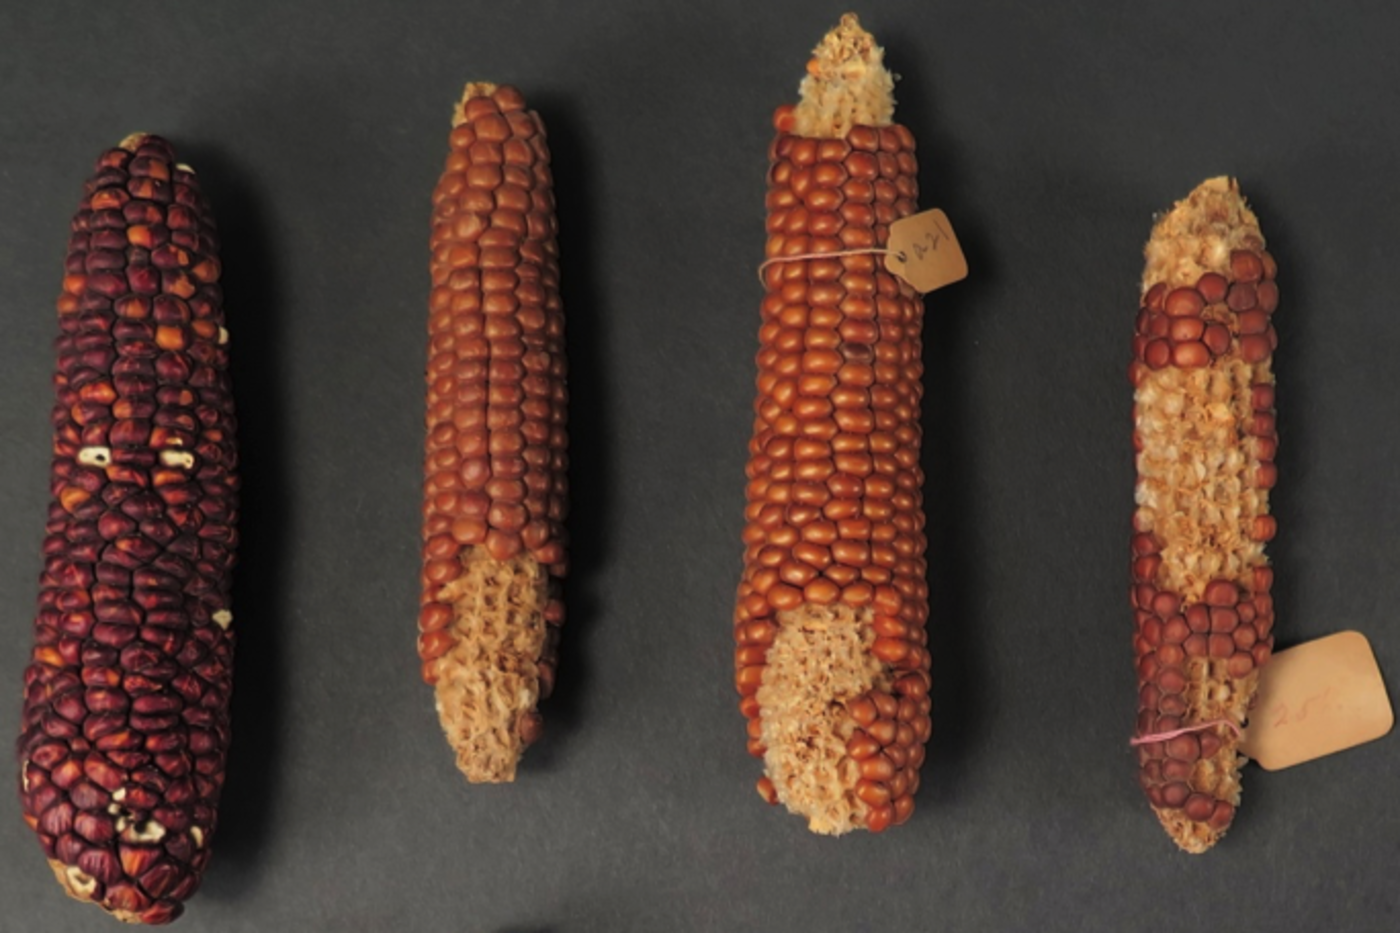 Four dried corn cobs that are shades of purple, orange, and brown